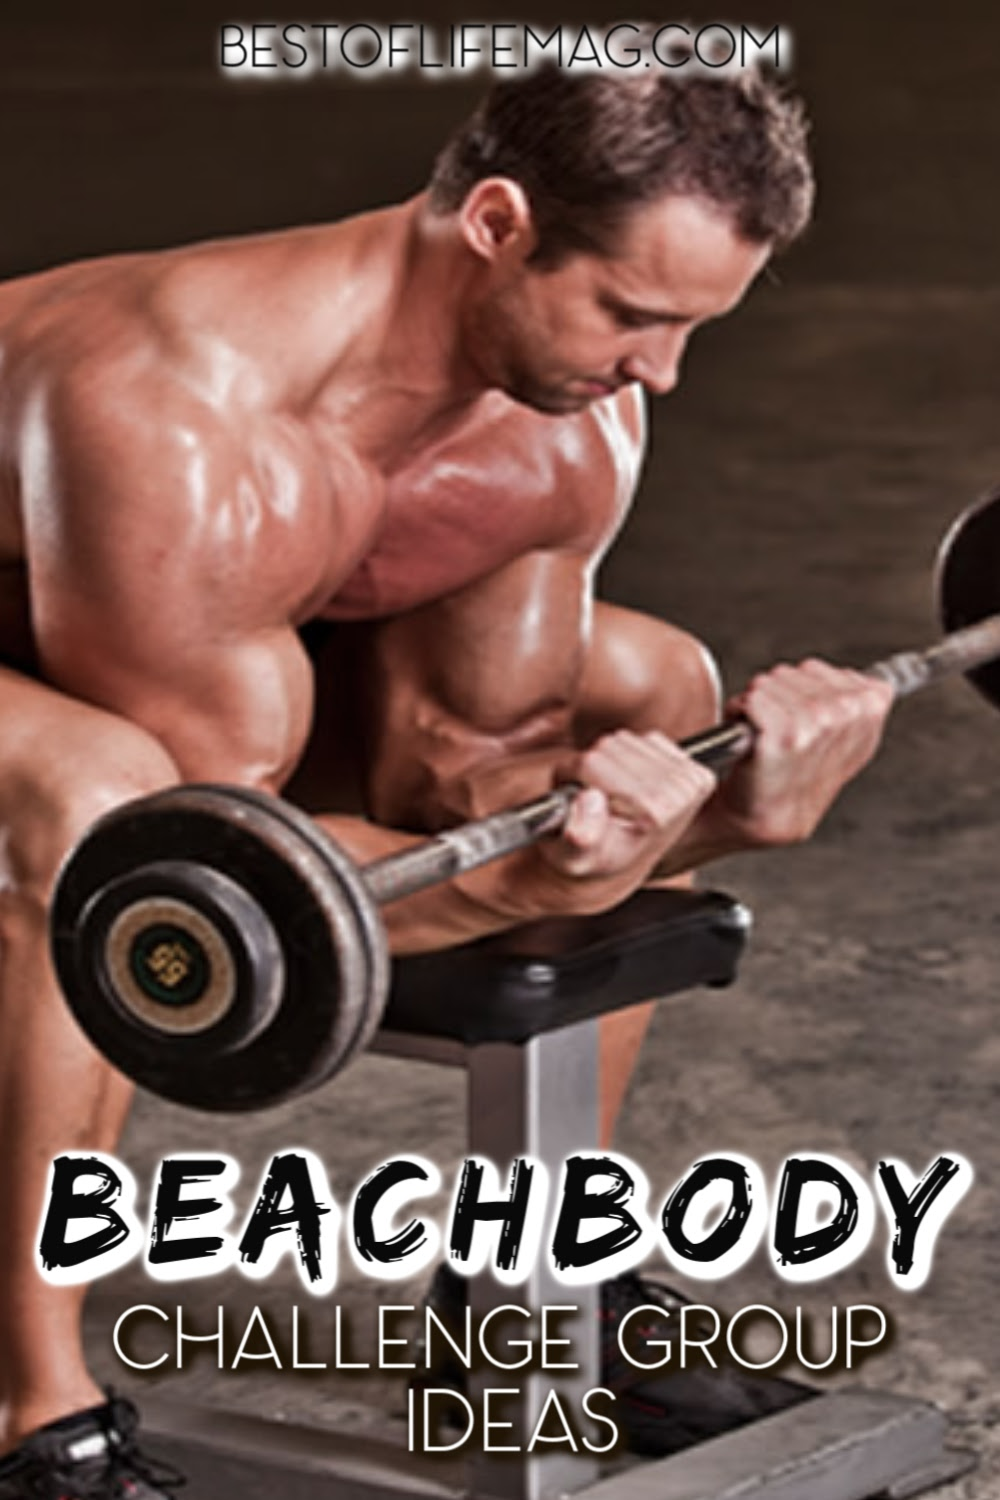 Use these effective Beachbody challenge group ideas to stay motivated with your at home workouts and weight loss goals. Healthy living is always easier with support! Beachbody Workouts   At Home Workout Ideas   Tips for Fitness   Beachbody Tips   Beachbody Group Workouts #fitness #beachbody